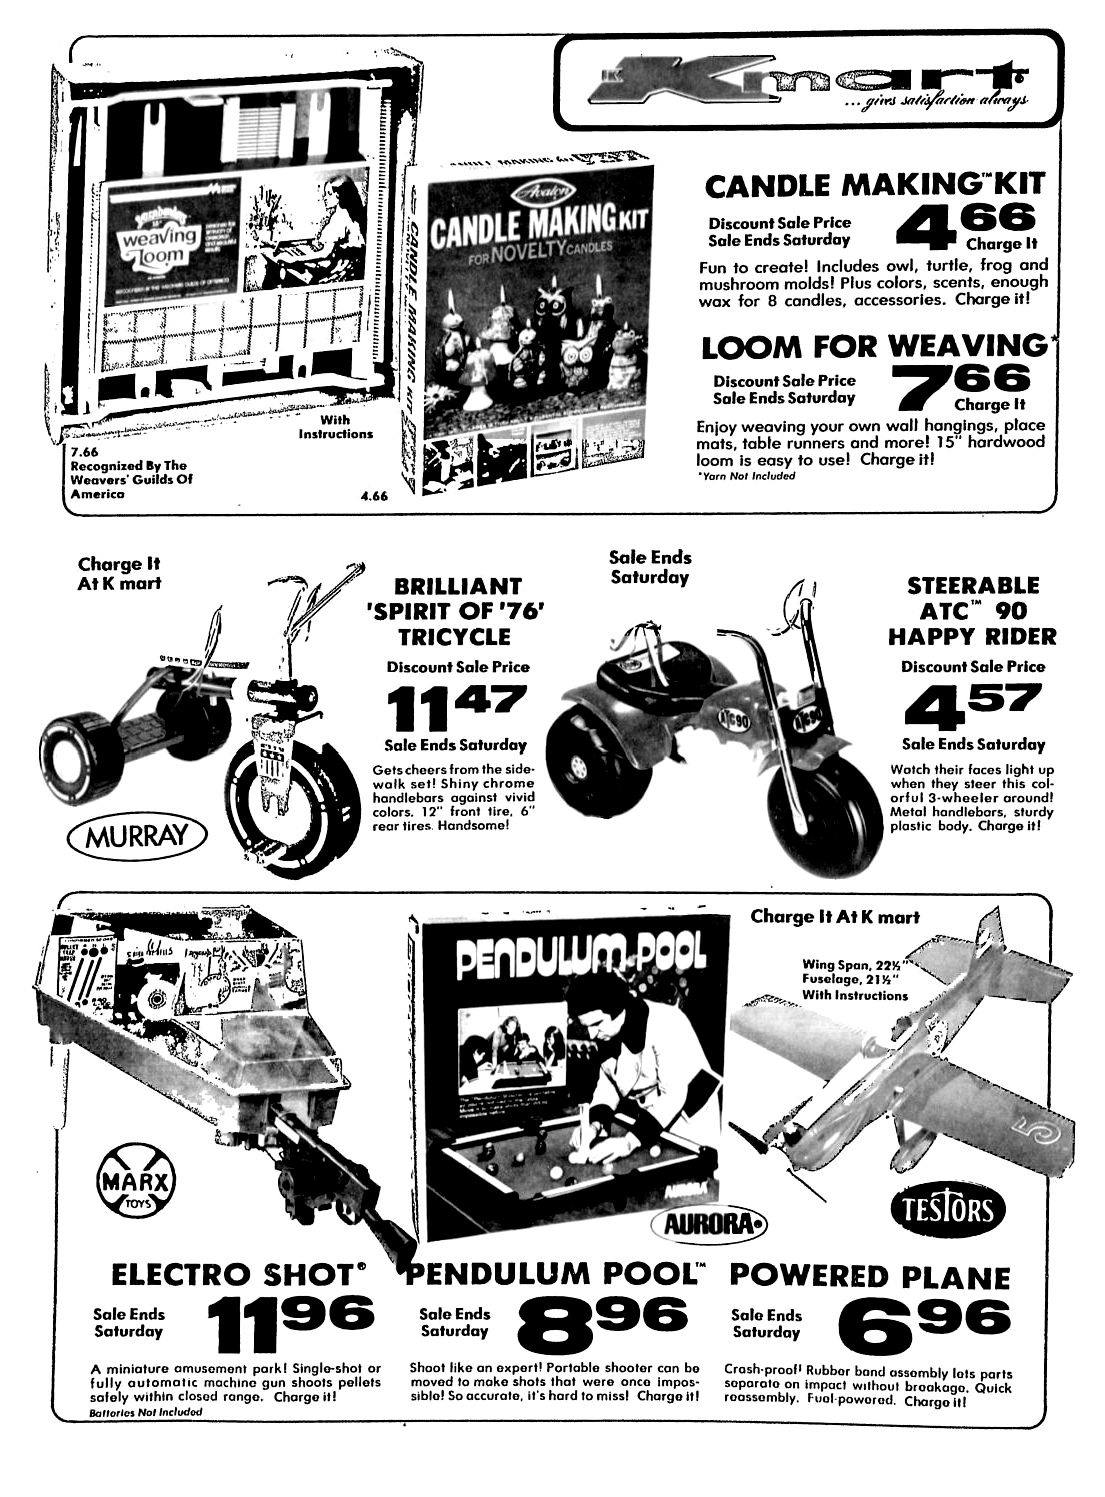 Candle Making Kit Kmart Kmart Toys Testors Plane Electro Shot Atc 90 November 1973